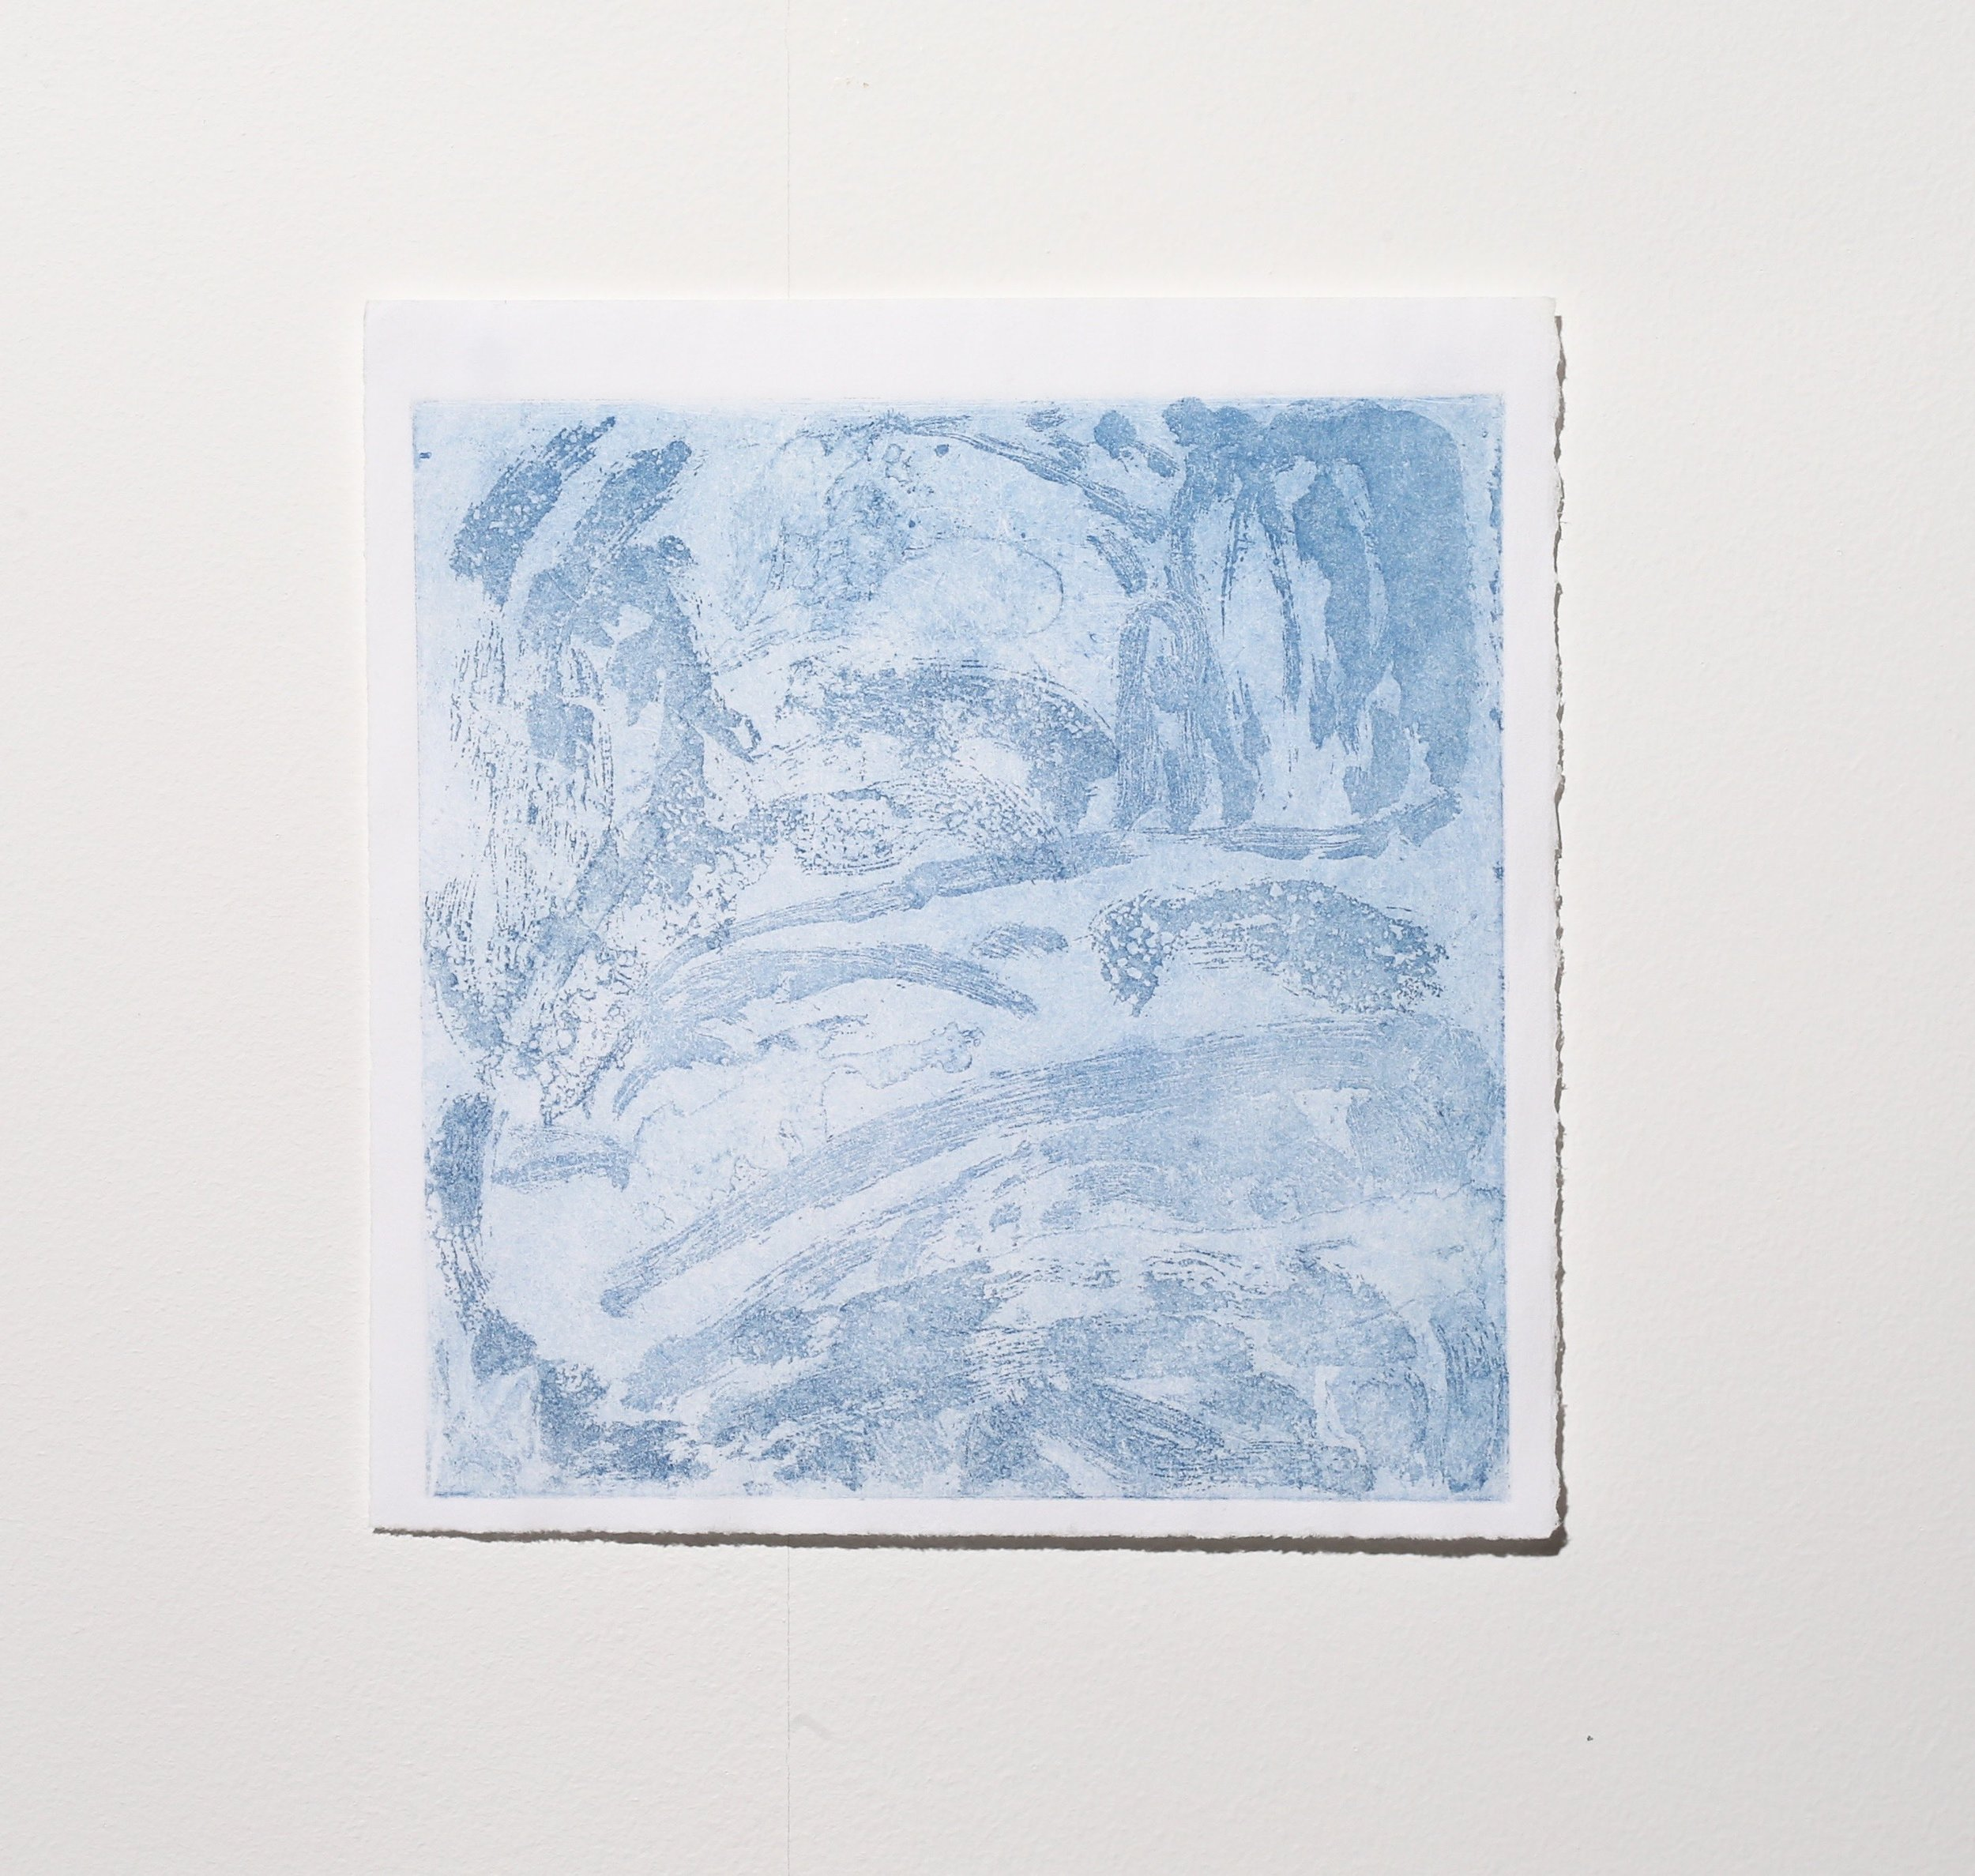 Untitled (stage 2, blue),  2019, sugar lift etching, 14.5 x 14.5 cm (plate size), $65